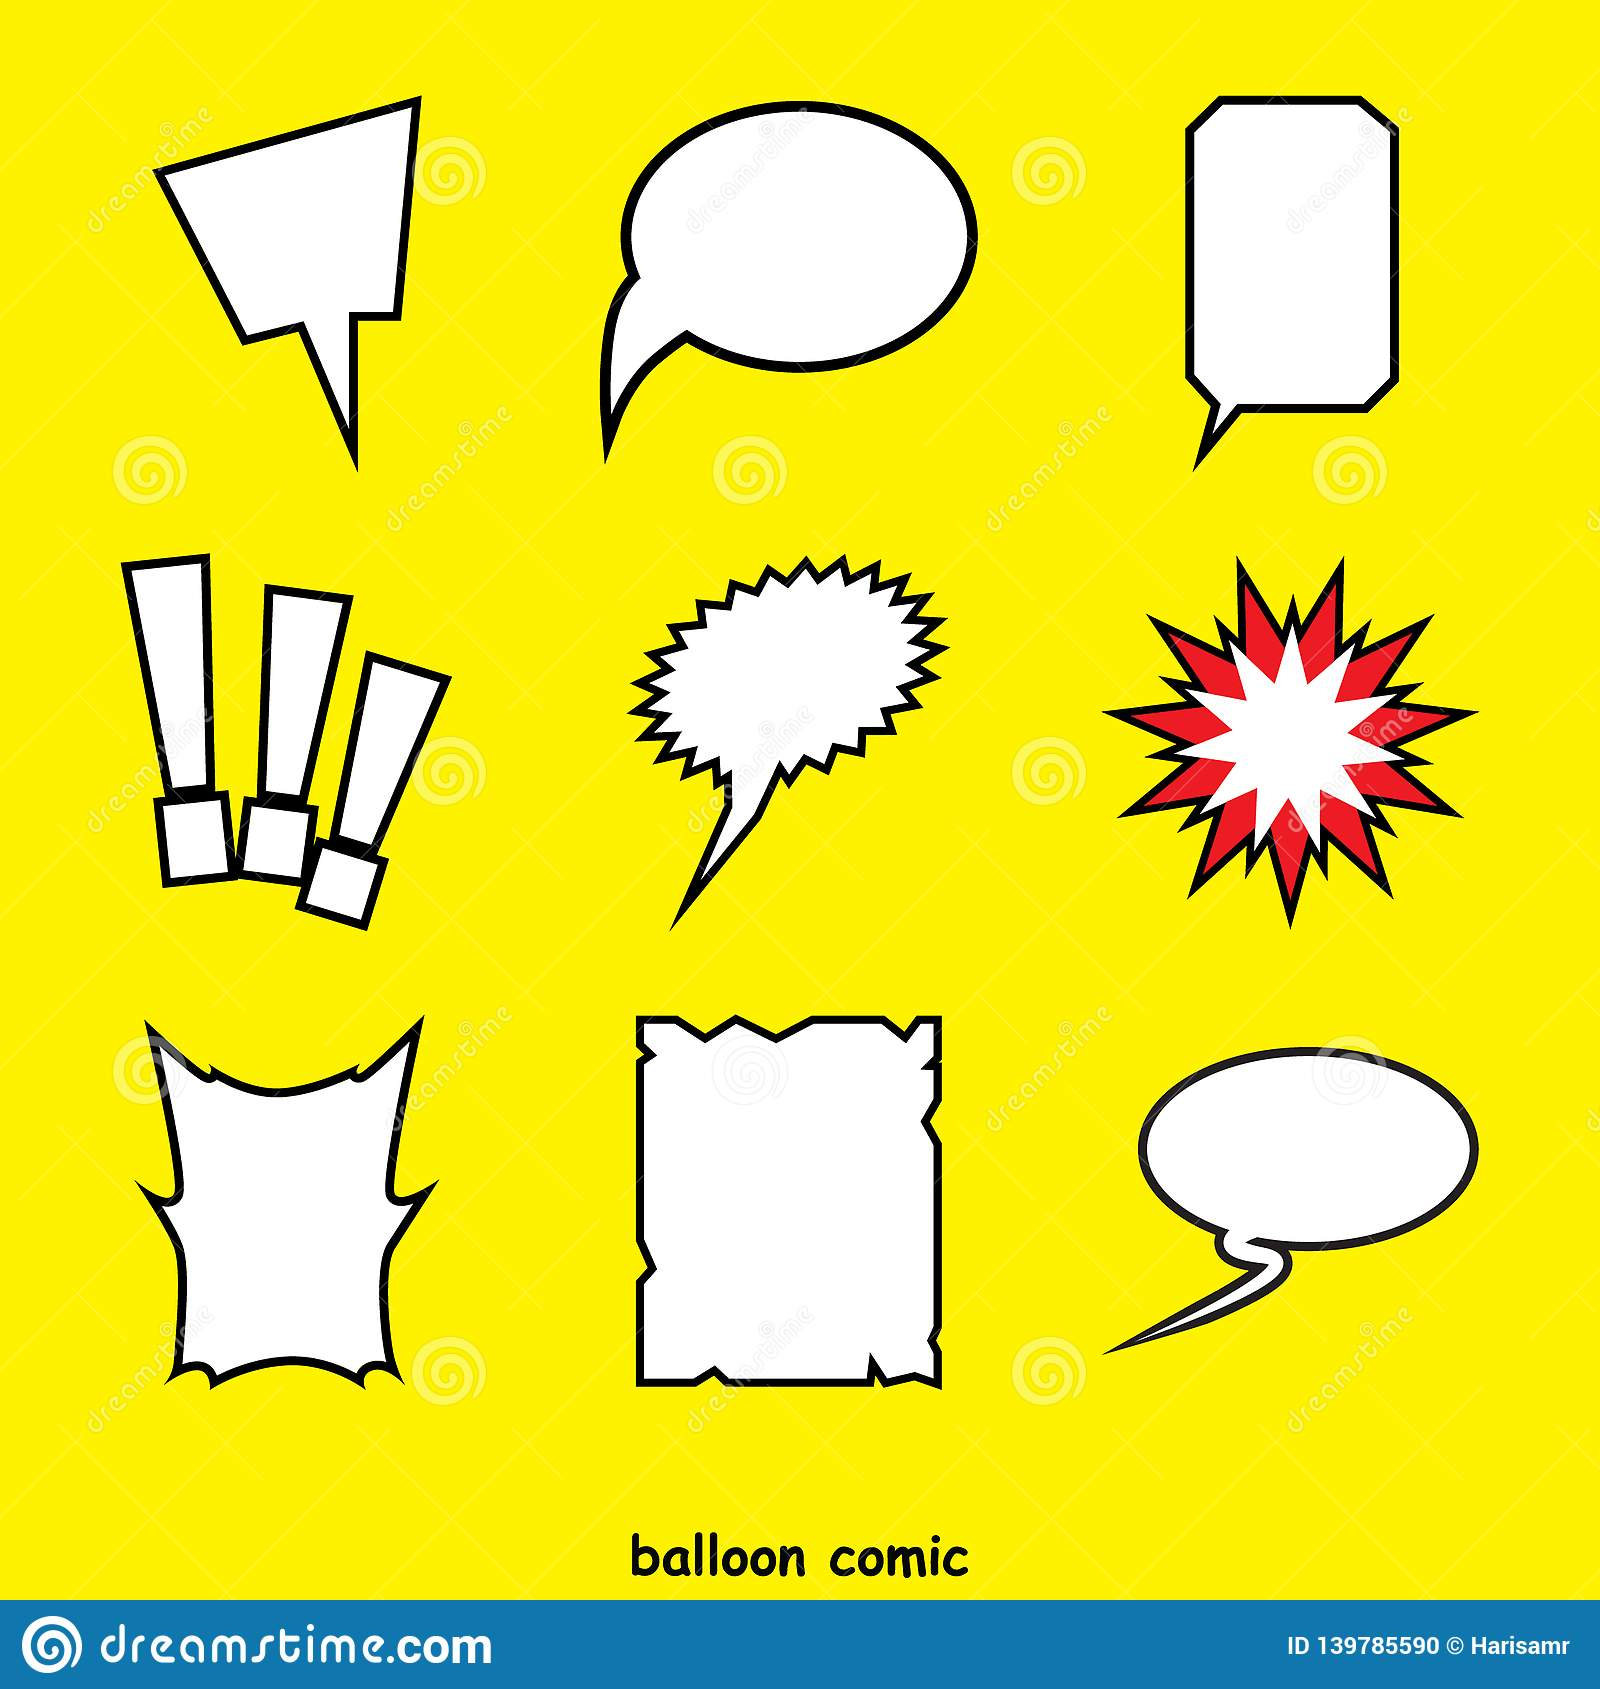 Word comic balloon vector. elements of verbal or textual communication